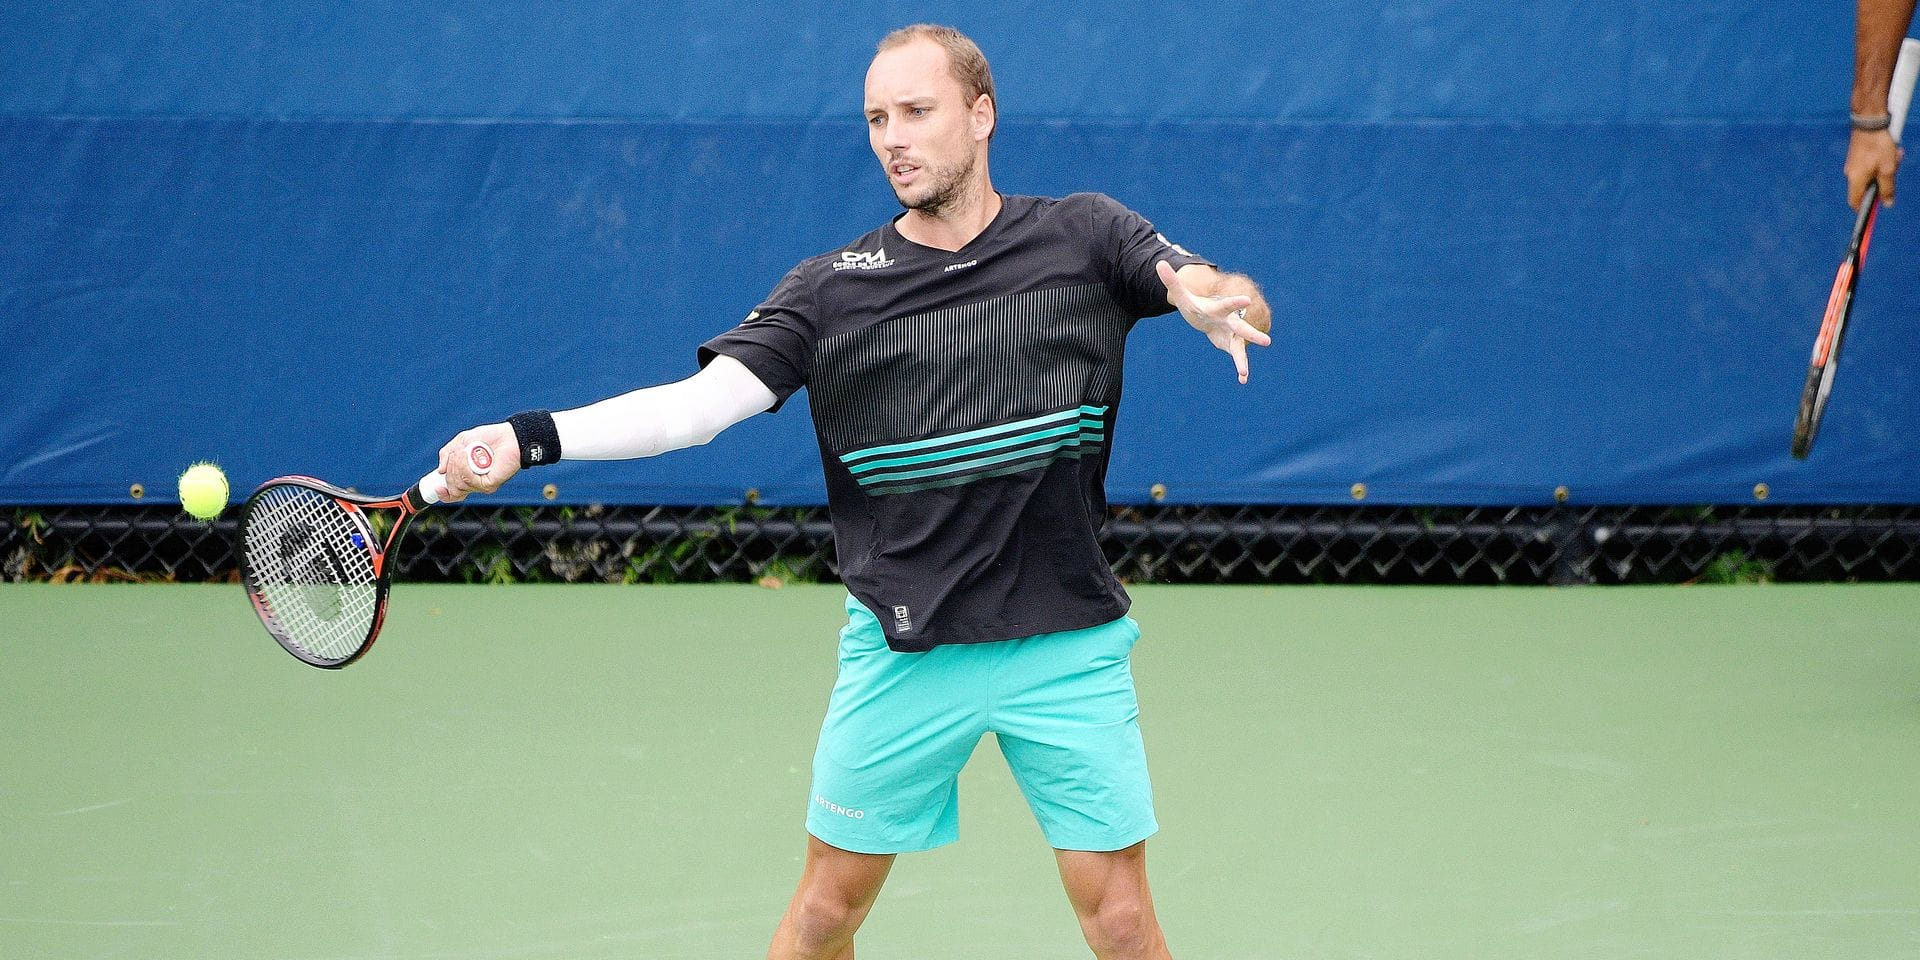 Belgian Steve Darcis pictured in action during a training practise ahead of the US Open Grand Slam tennis tournament, at Flushing Meadow, in New York City, USA, Friday 23 August 2019. BELGA PHOTO YORICK JANSENS